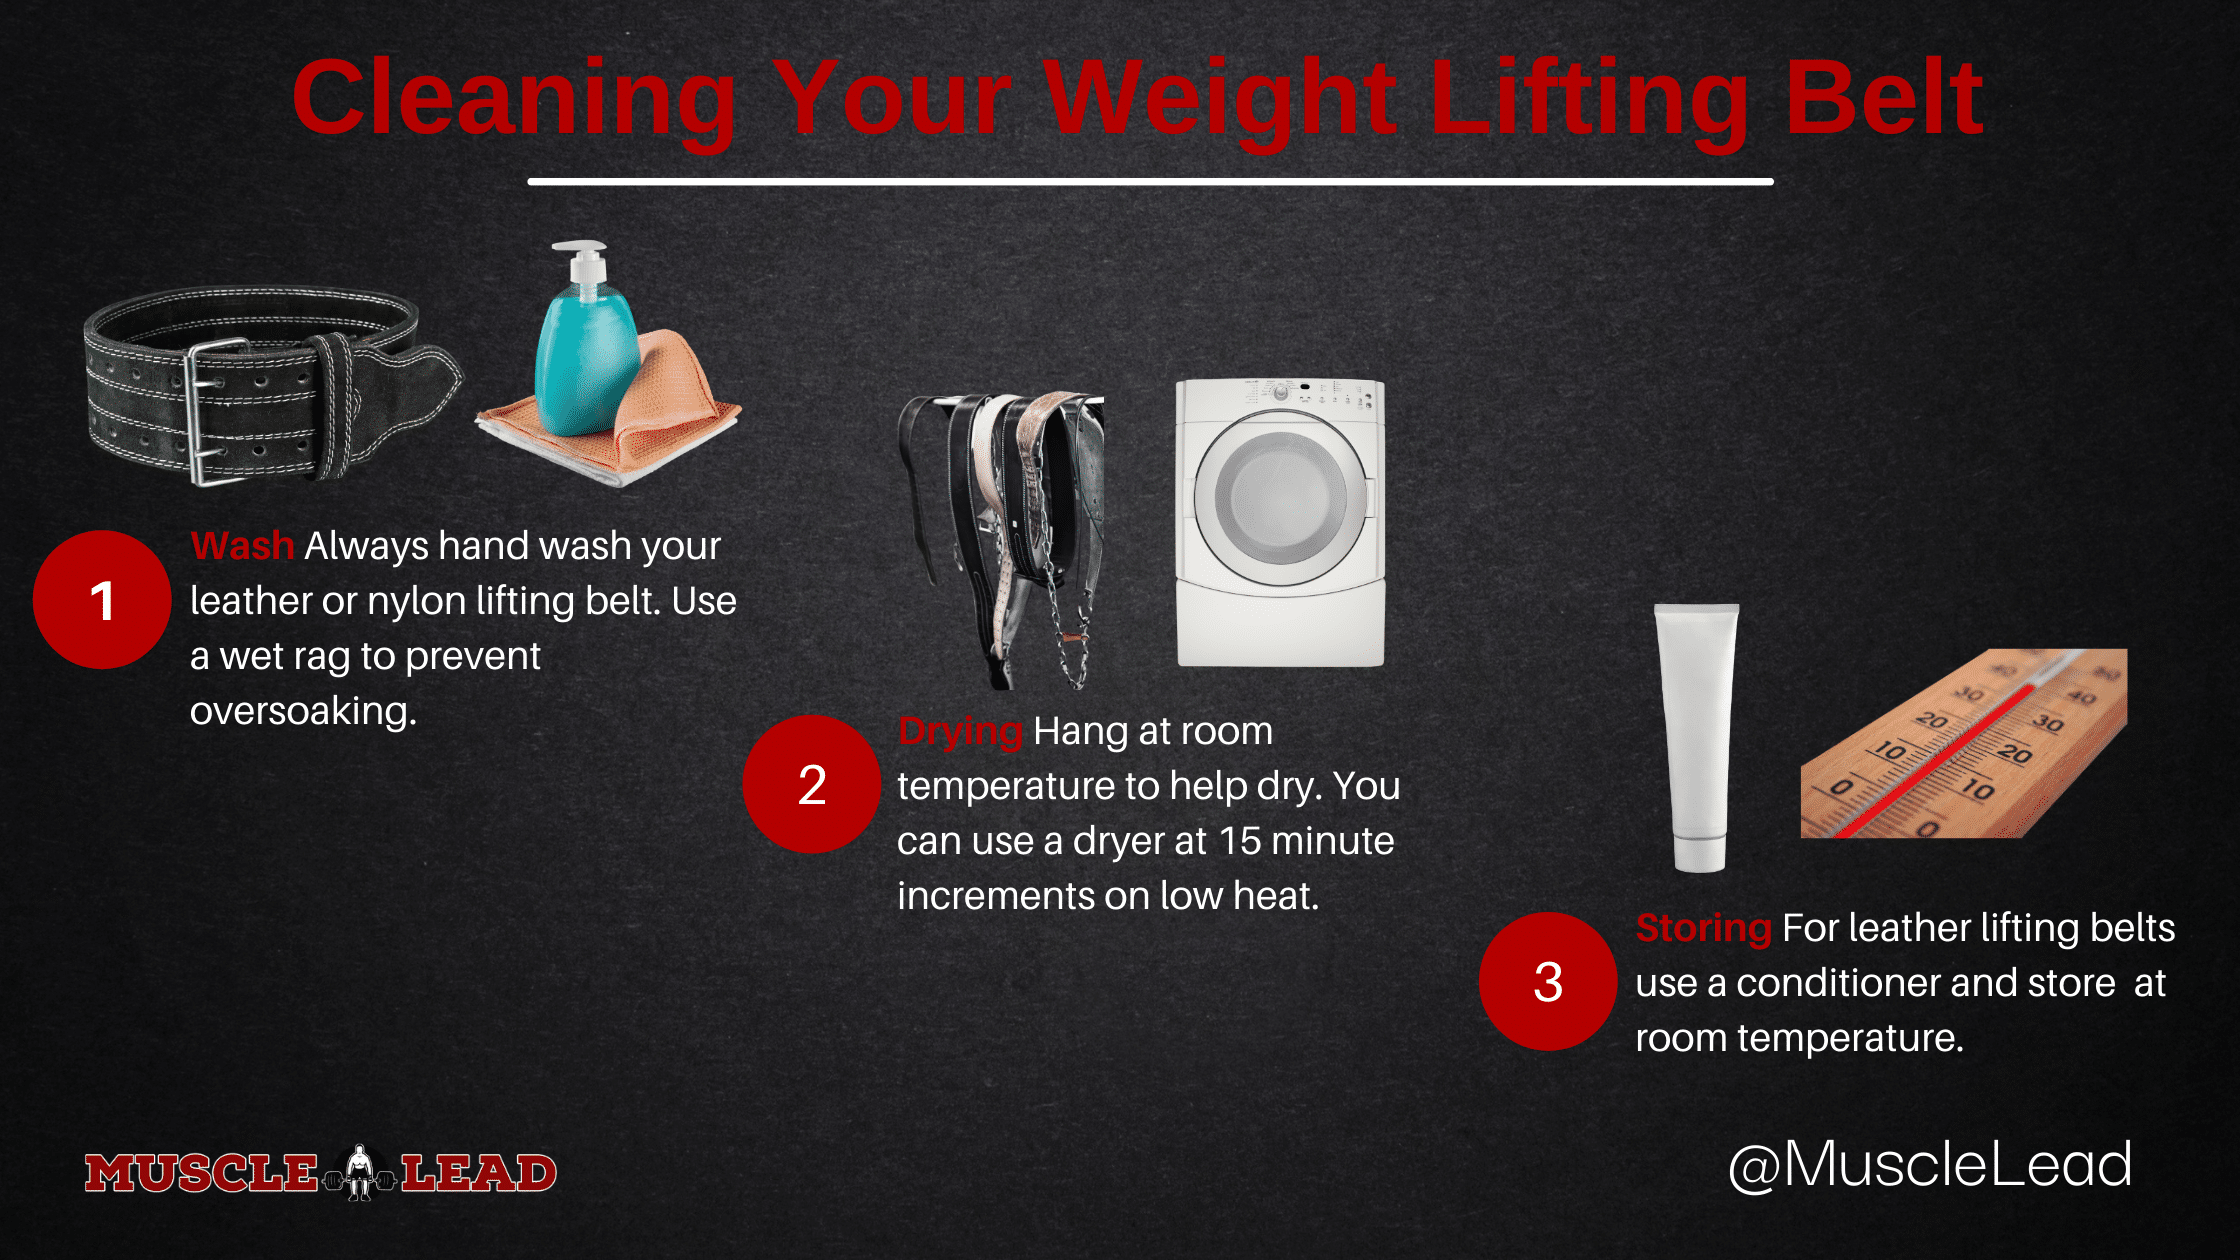 How to care for your lifting belt